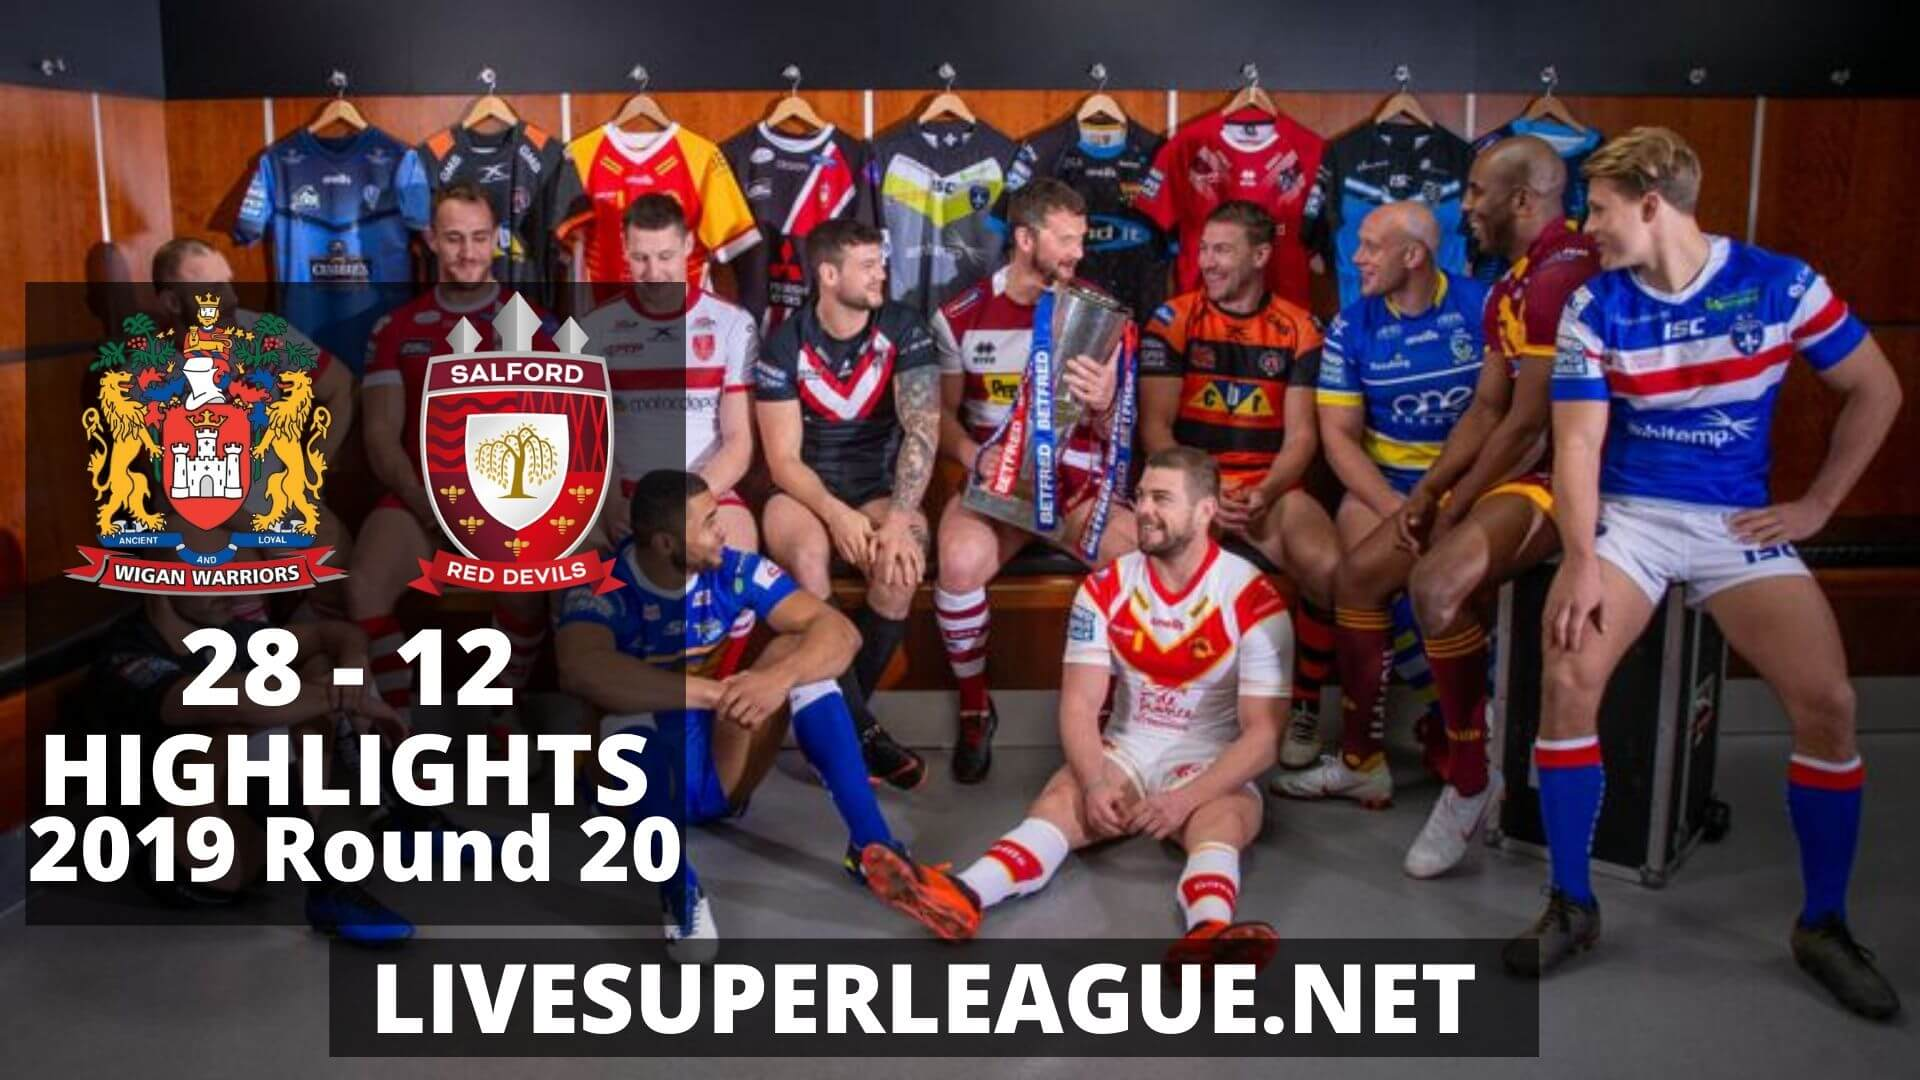 Wigan Warriors Vs Salford Red Devils Highlights 2019 Round 20